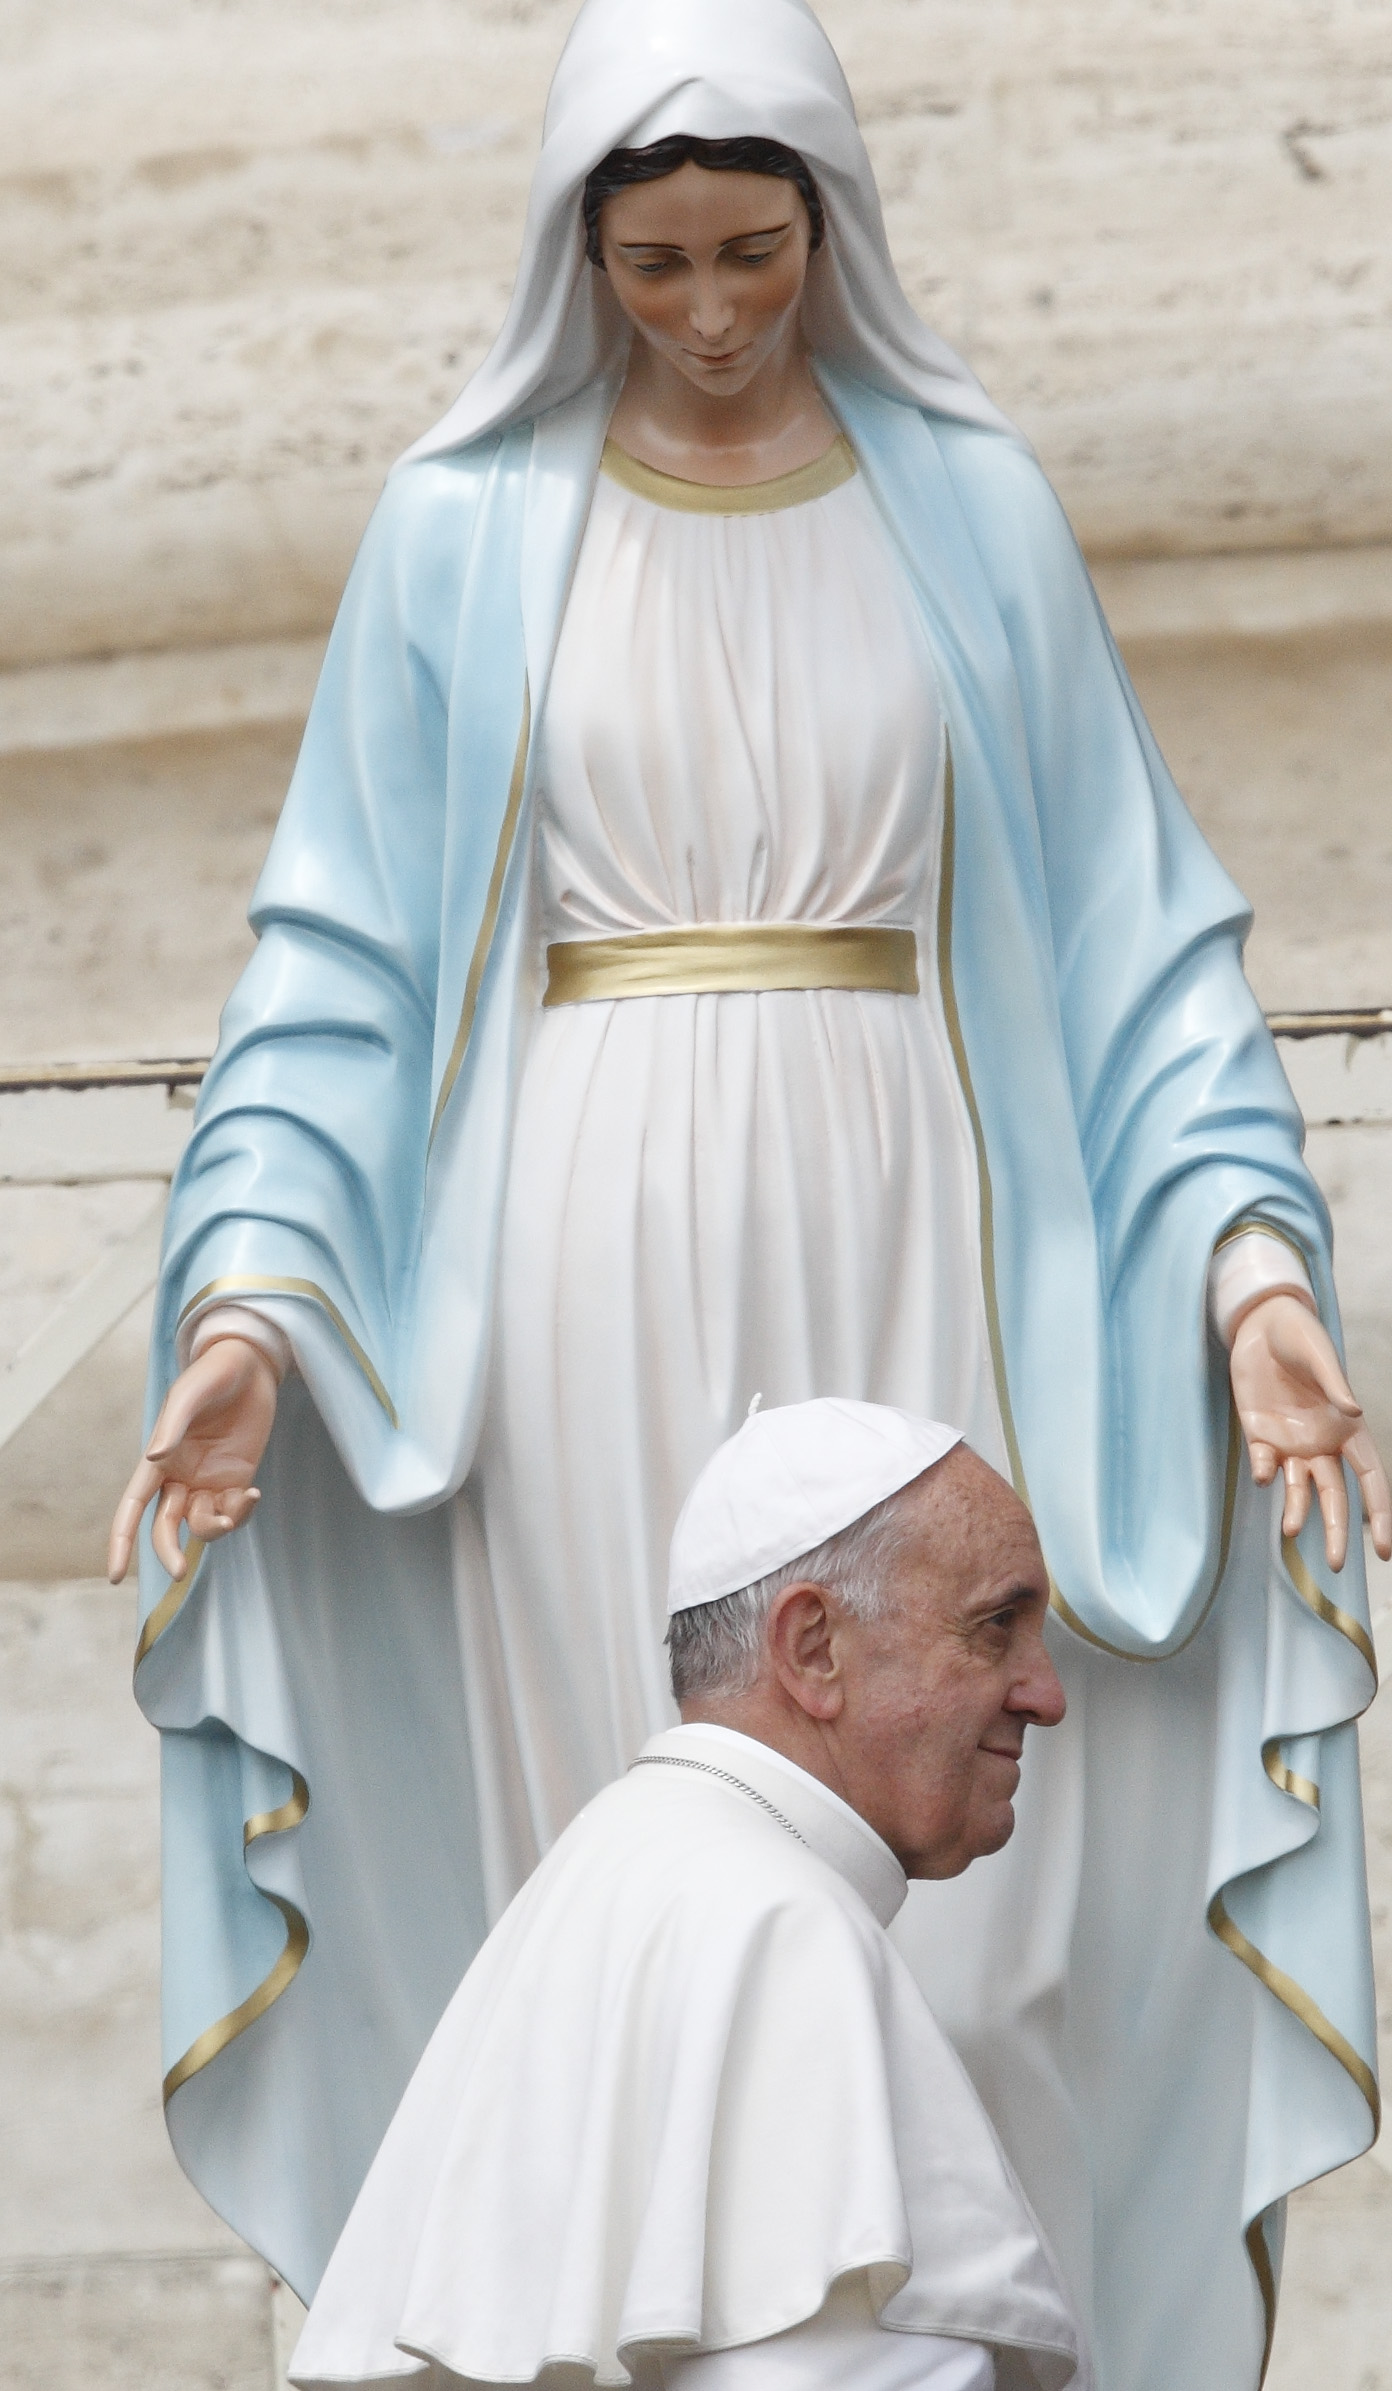 Pope Francis walks past a statue of Mary after praying in front of it during his general audience in St. Peter's Square at the Vatican, May 29, 2013. (CNS photo/Paul Haring)